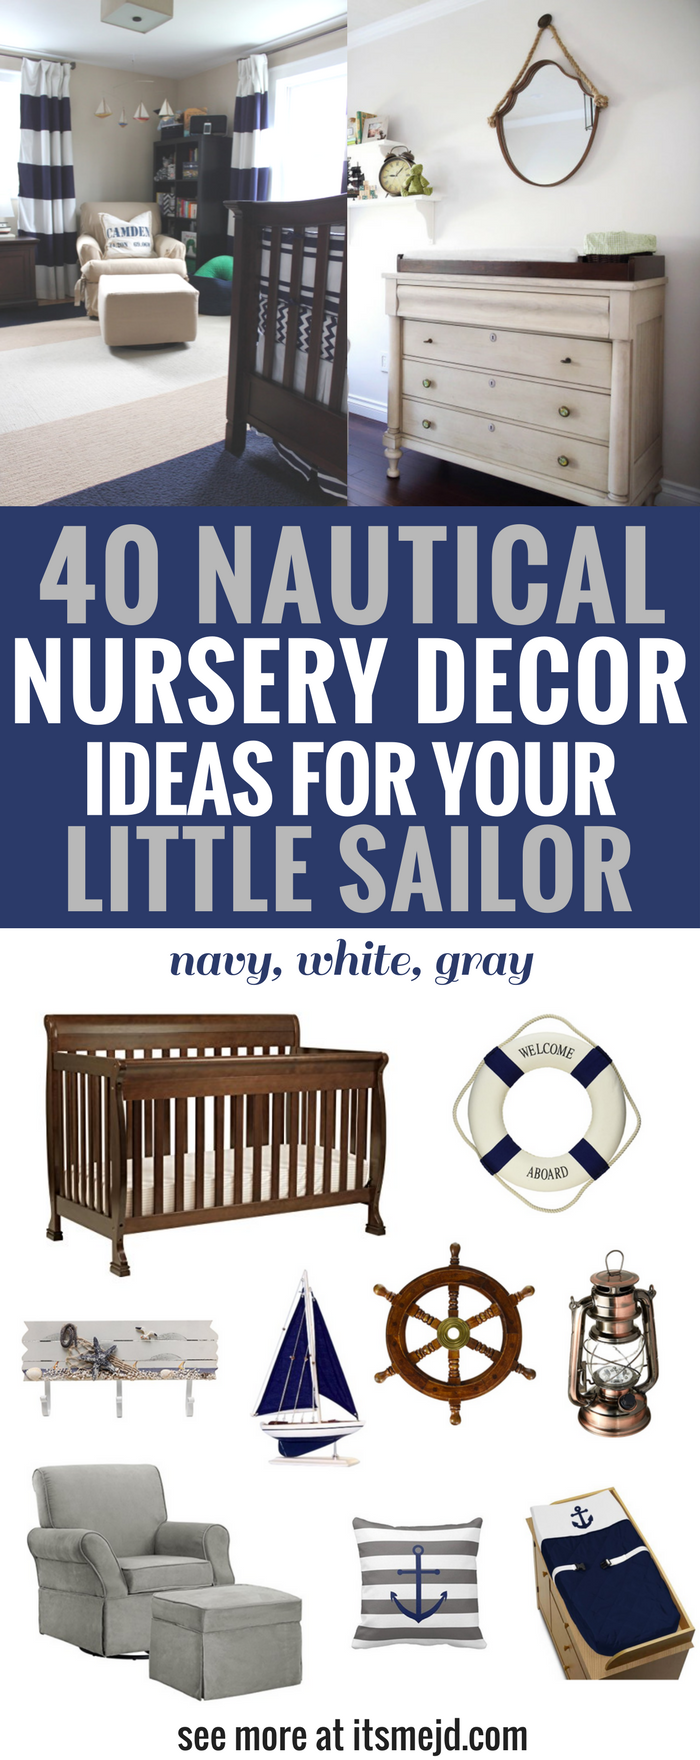 Nautical Nursery Decor Ideas for Your Little Sailor, Boy, Navy Theme, baby